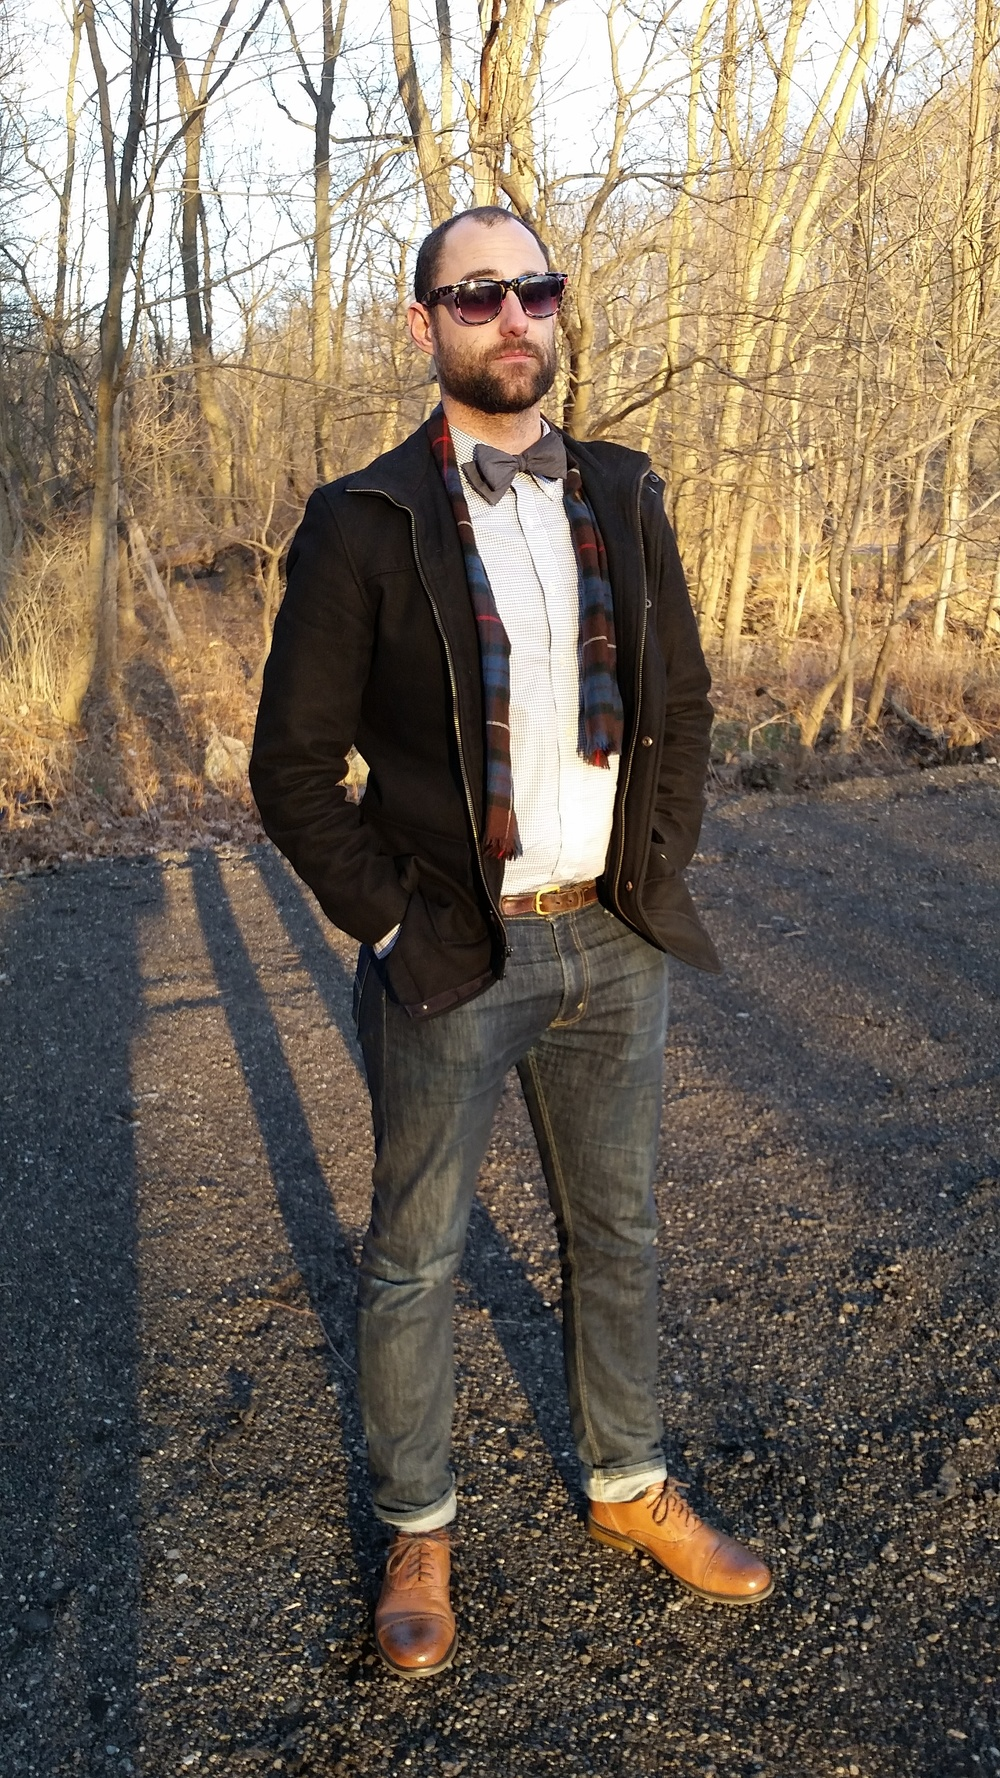 My super-handsome husband (seriously, look at that guy!) is wearing: Five Below sunglasses stolen from me, Levi's 513 jeans, bow tie from  The Tie Bar , shoes by Steve Madden, Uniqlo shirt, Kenneth Cole Reaction coat, thrifted belt.